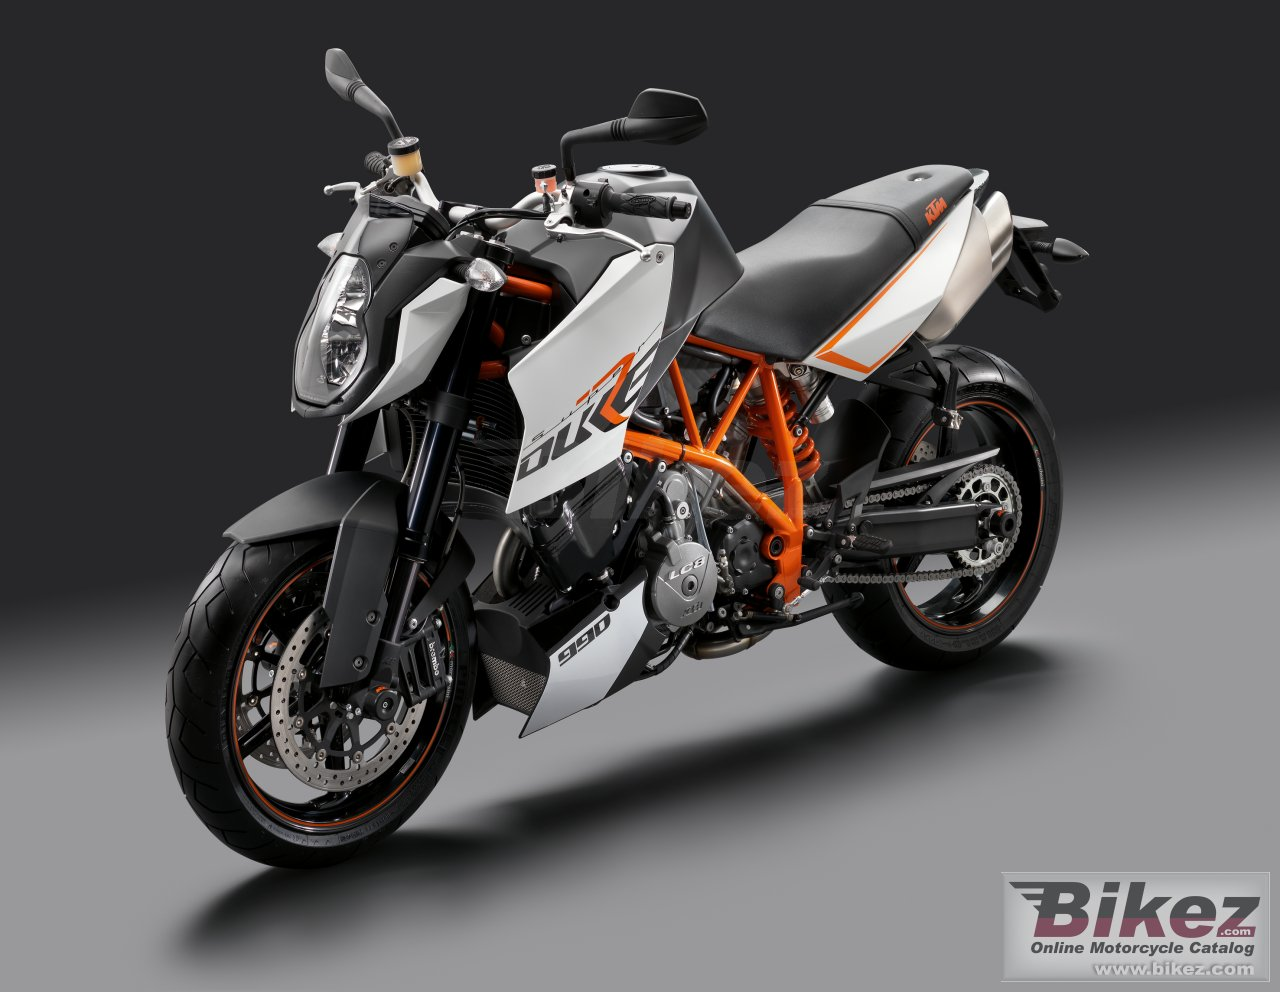 Big KTM 990 super duke r picture and wallpaper from Bikez.com